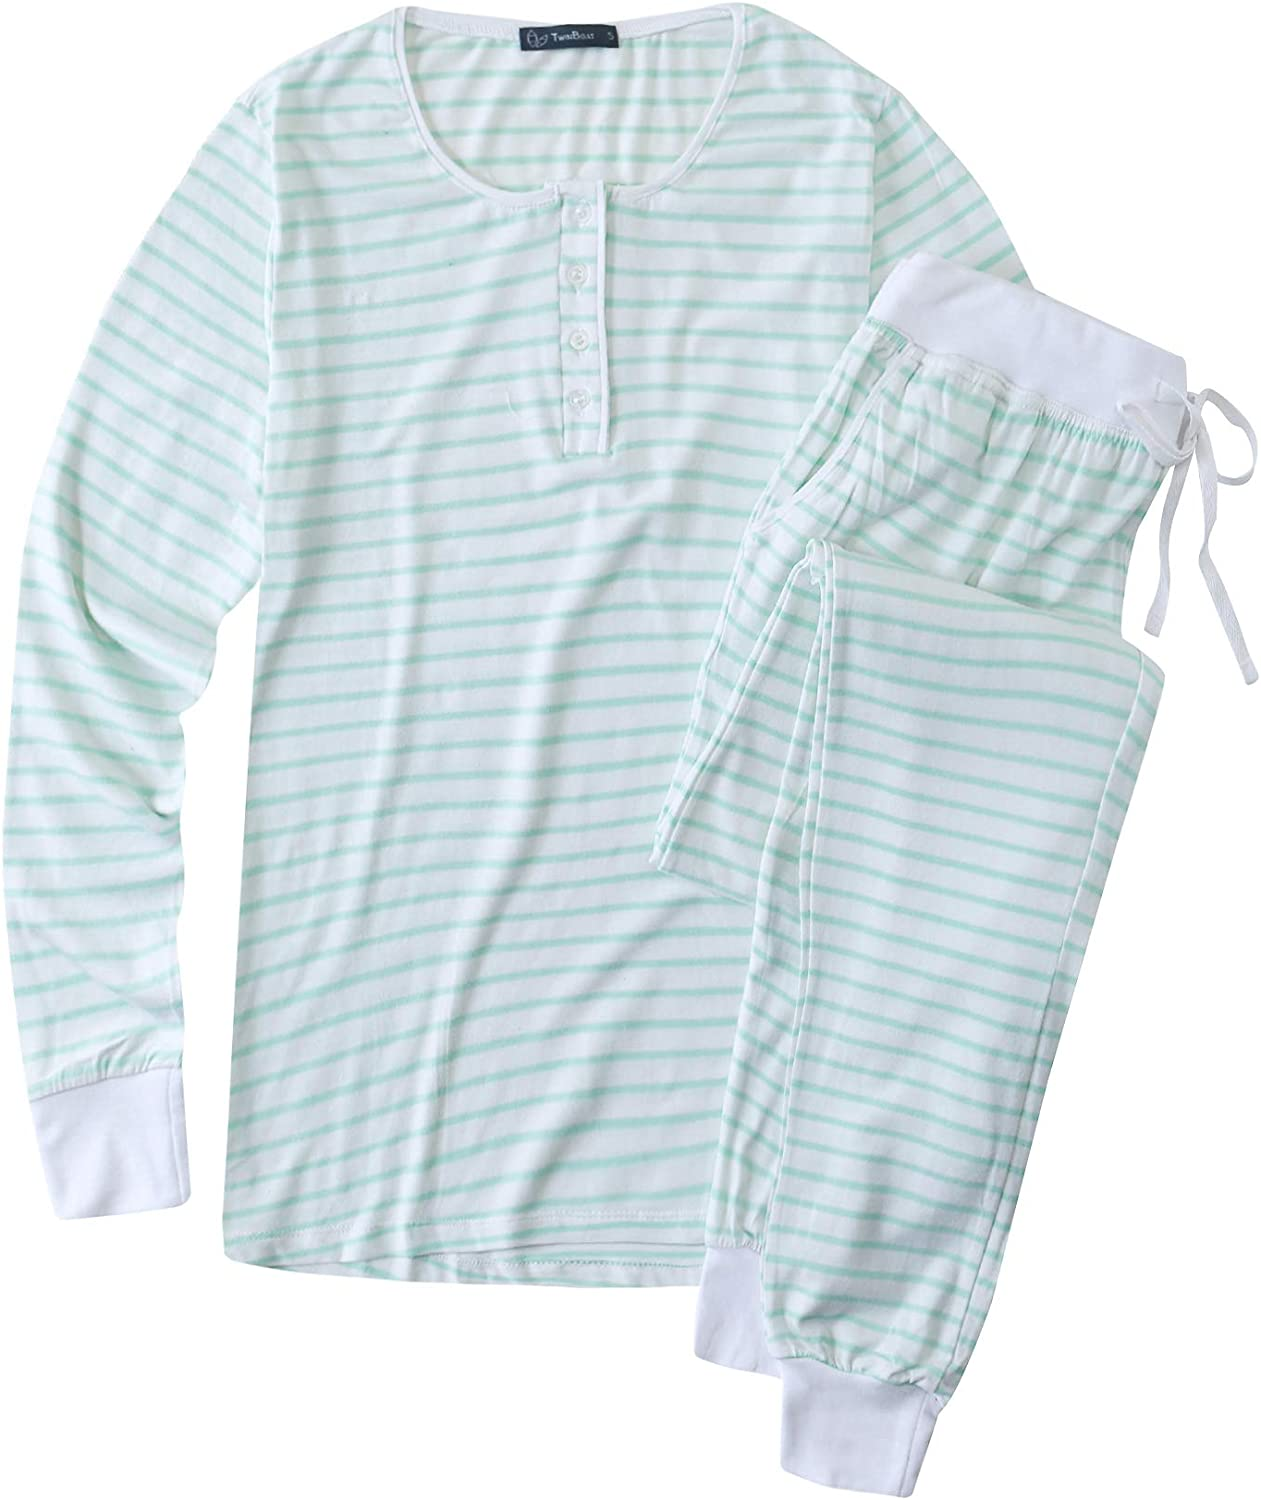 Noble Mount Twin Max 80% OFF Boat Super Soft Cotton for Pajamas - Women beauty product restock quality top Jers